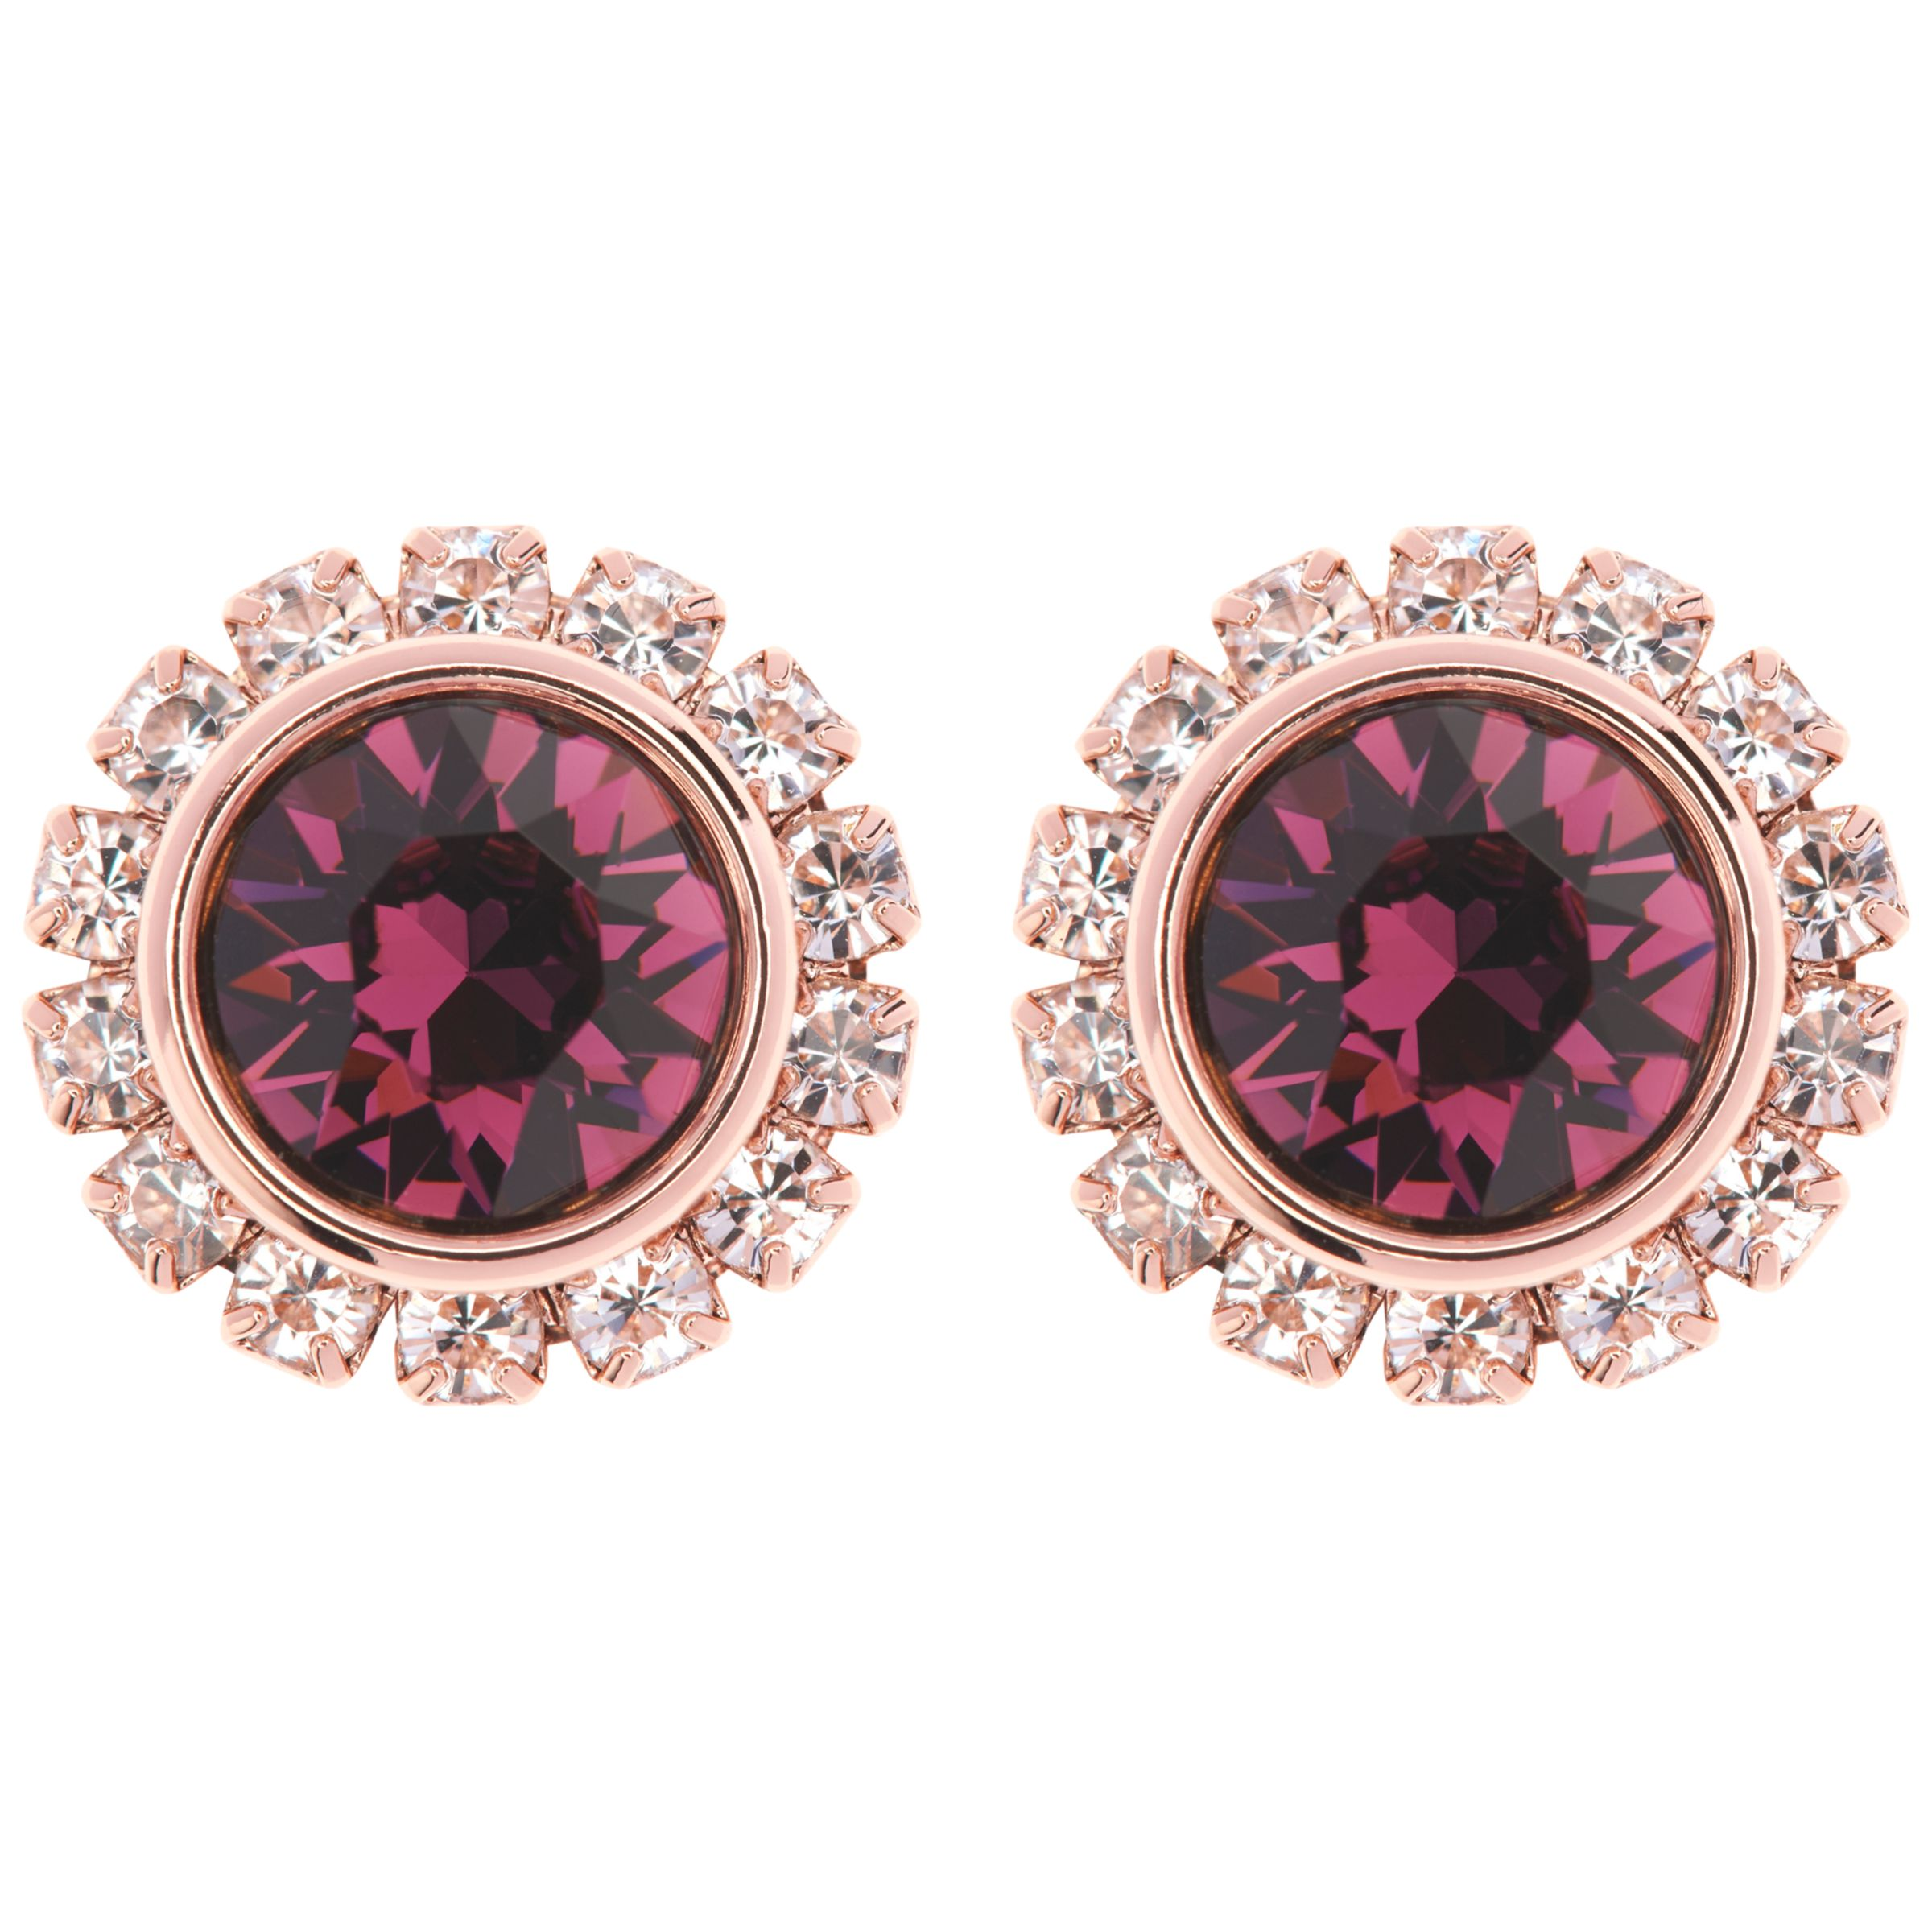 6b5c9033eb57 Ted Baker Sully Swarovski Crystal Stud Earrings at John Lewis   Partners